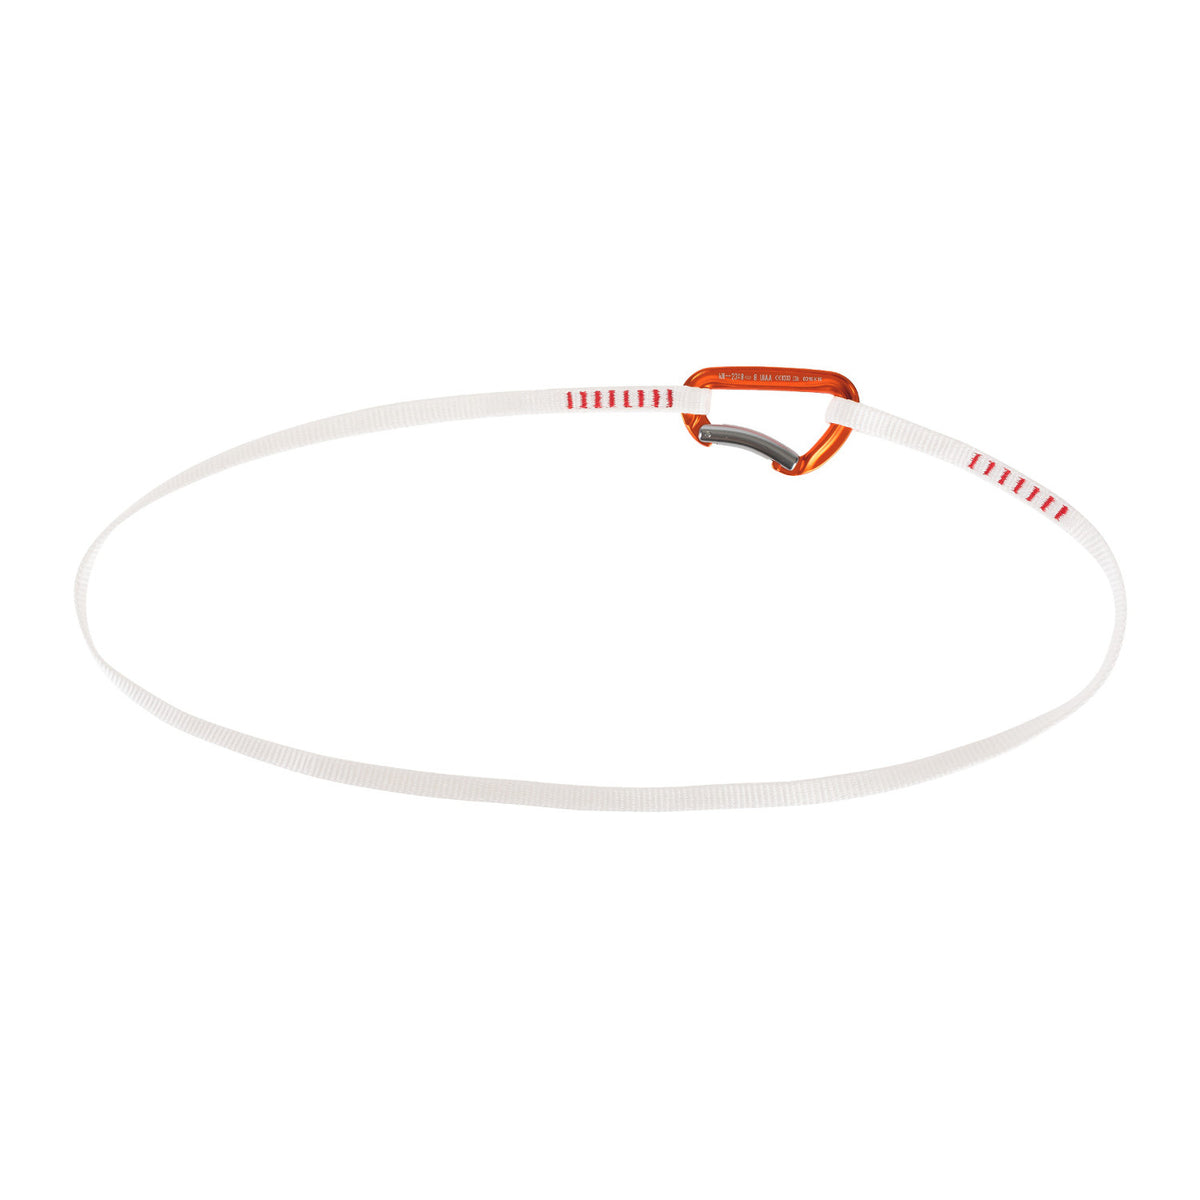 Mammut Alpine Trad Sling 120cm in White & Orange with a carabiner joining it